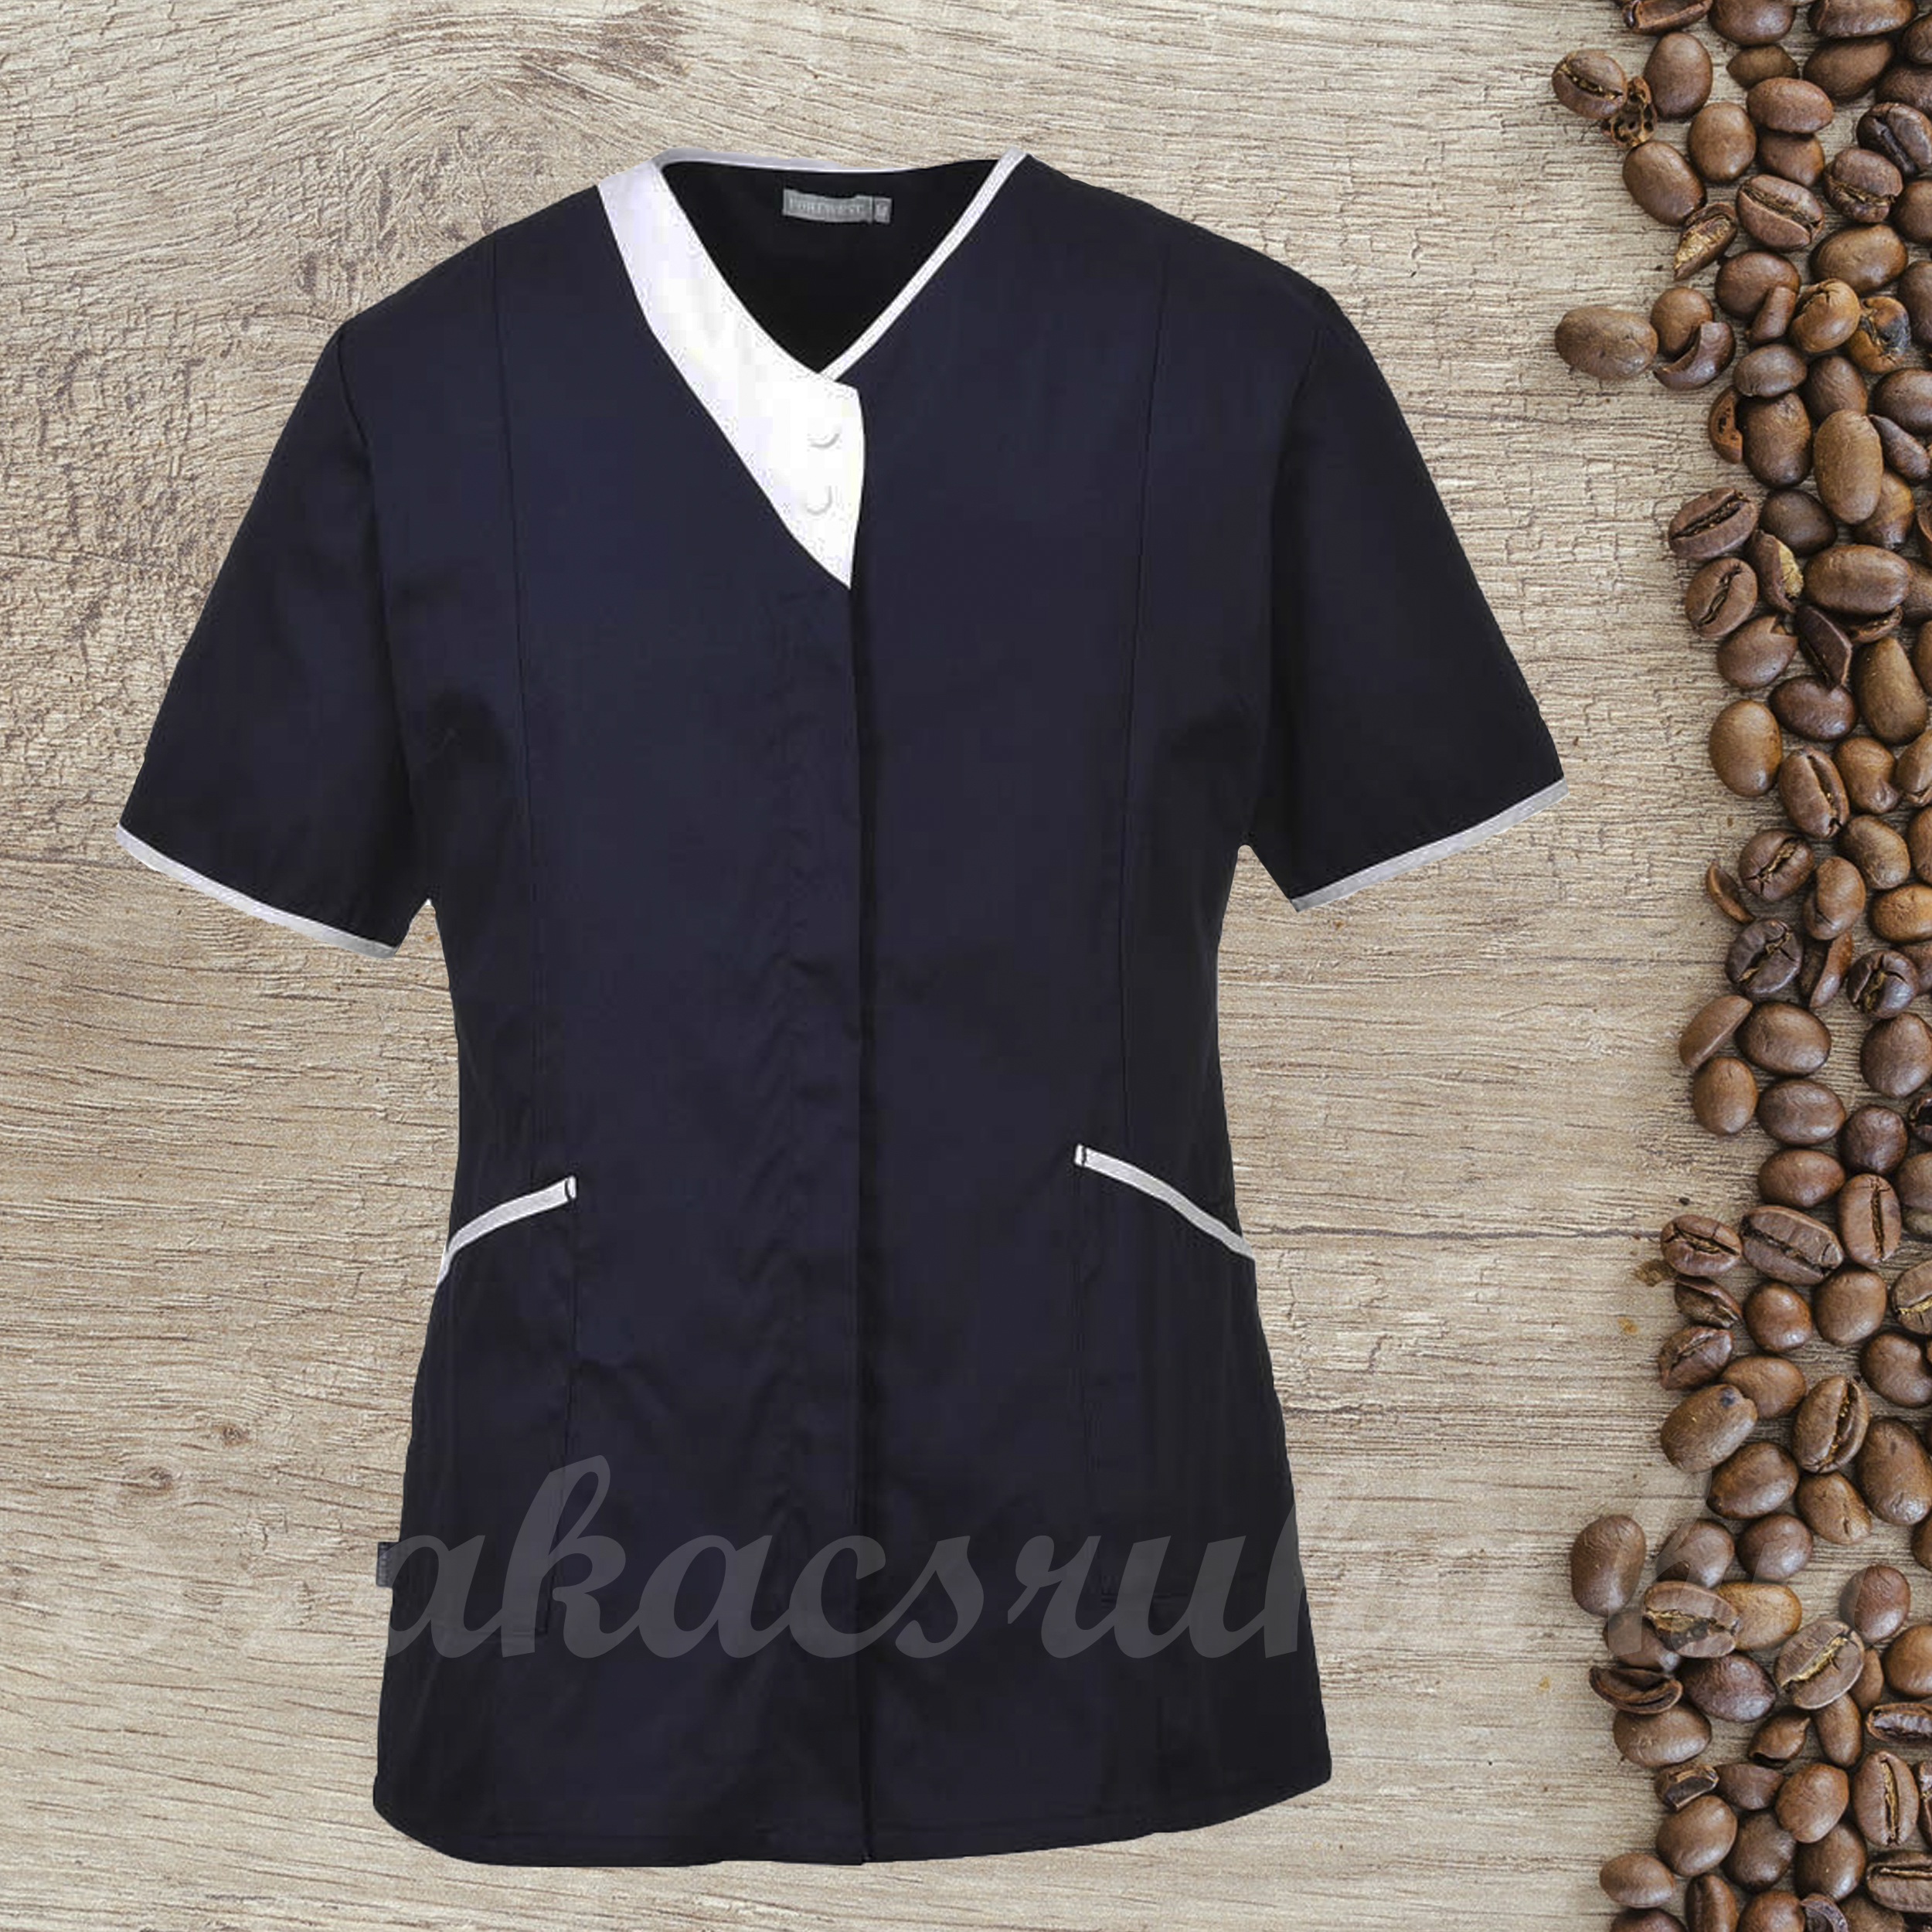 /upload/files/63/lw13navy-2-12876.jpg